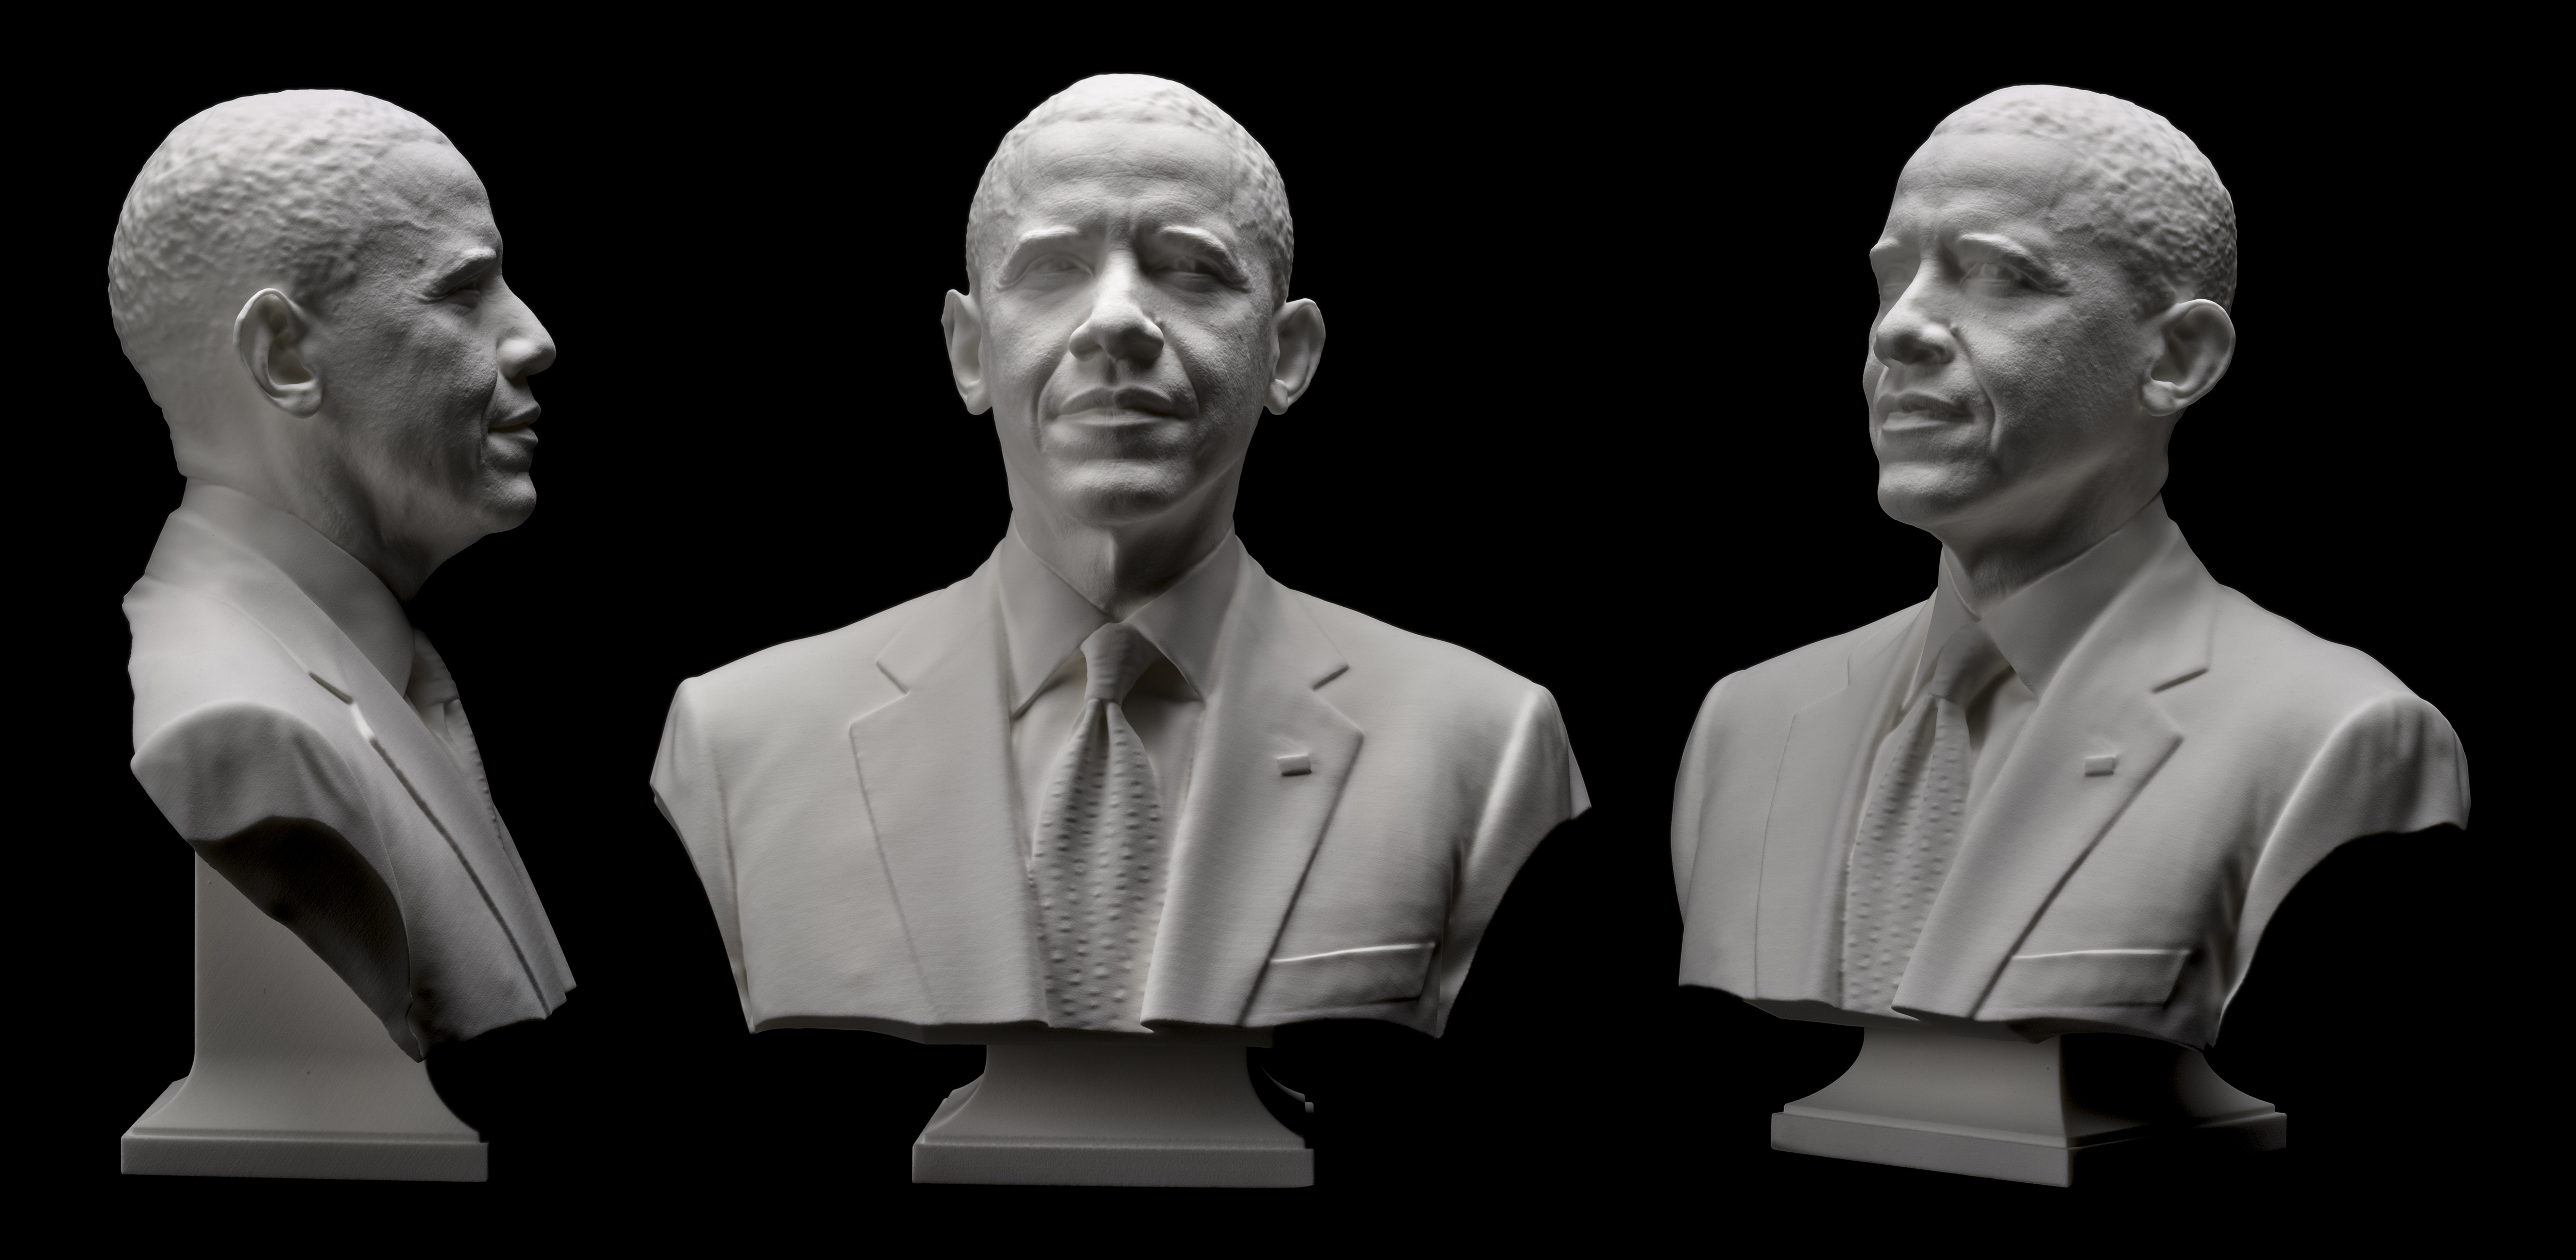 3 d portrait of president obama smithsonian insider